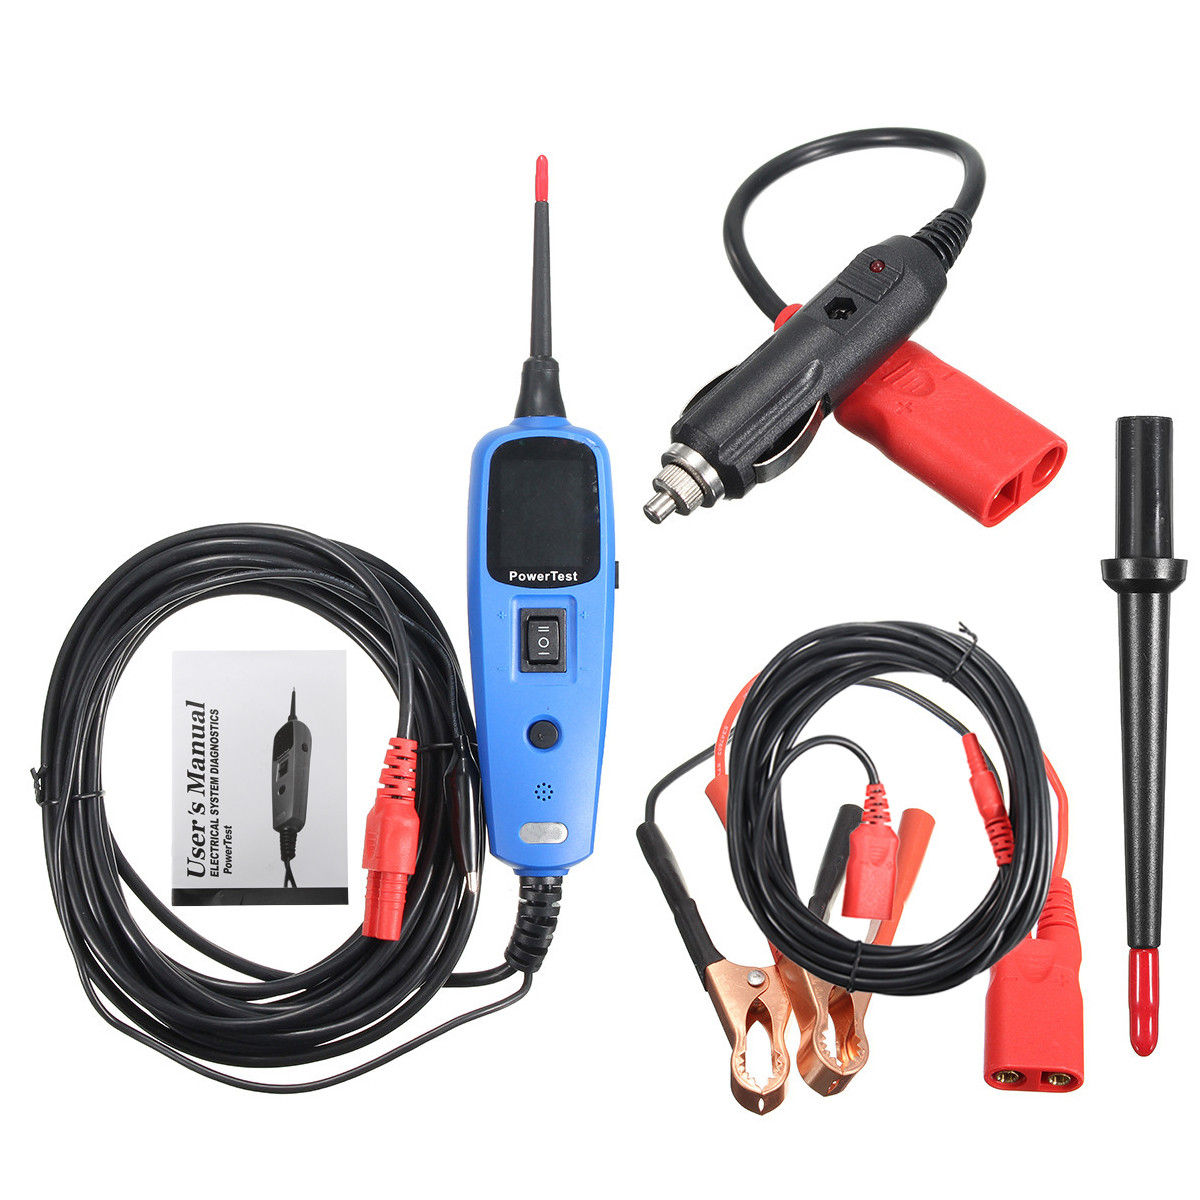 Electrical Power Tester : Automotive power probe supply circuit tester electrical